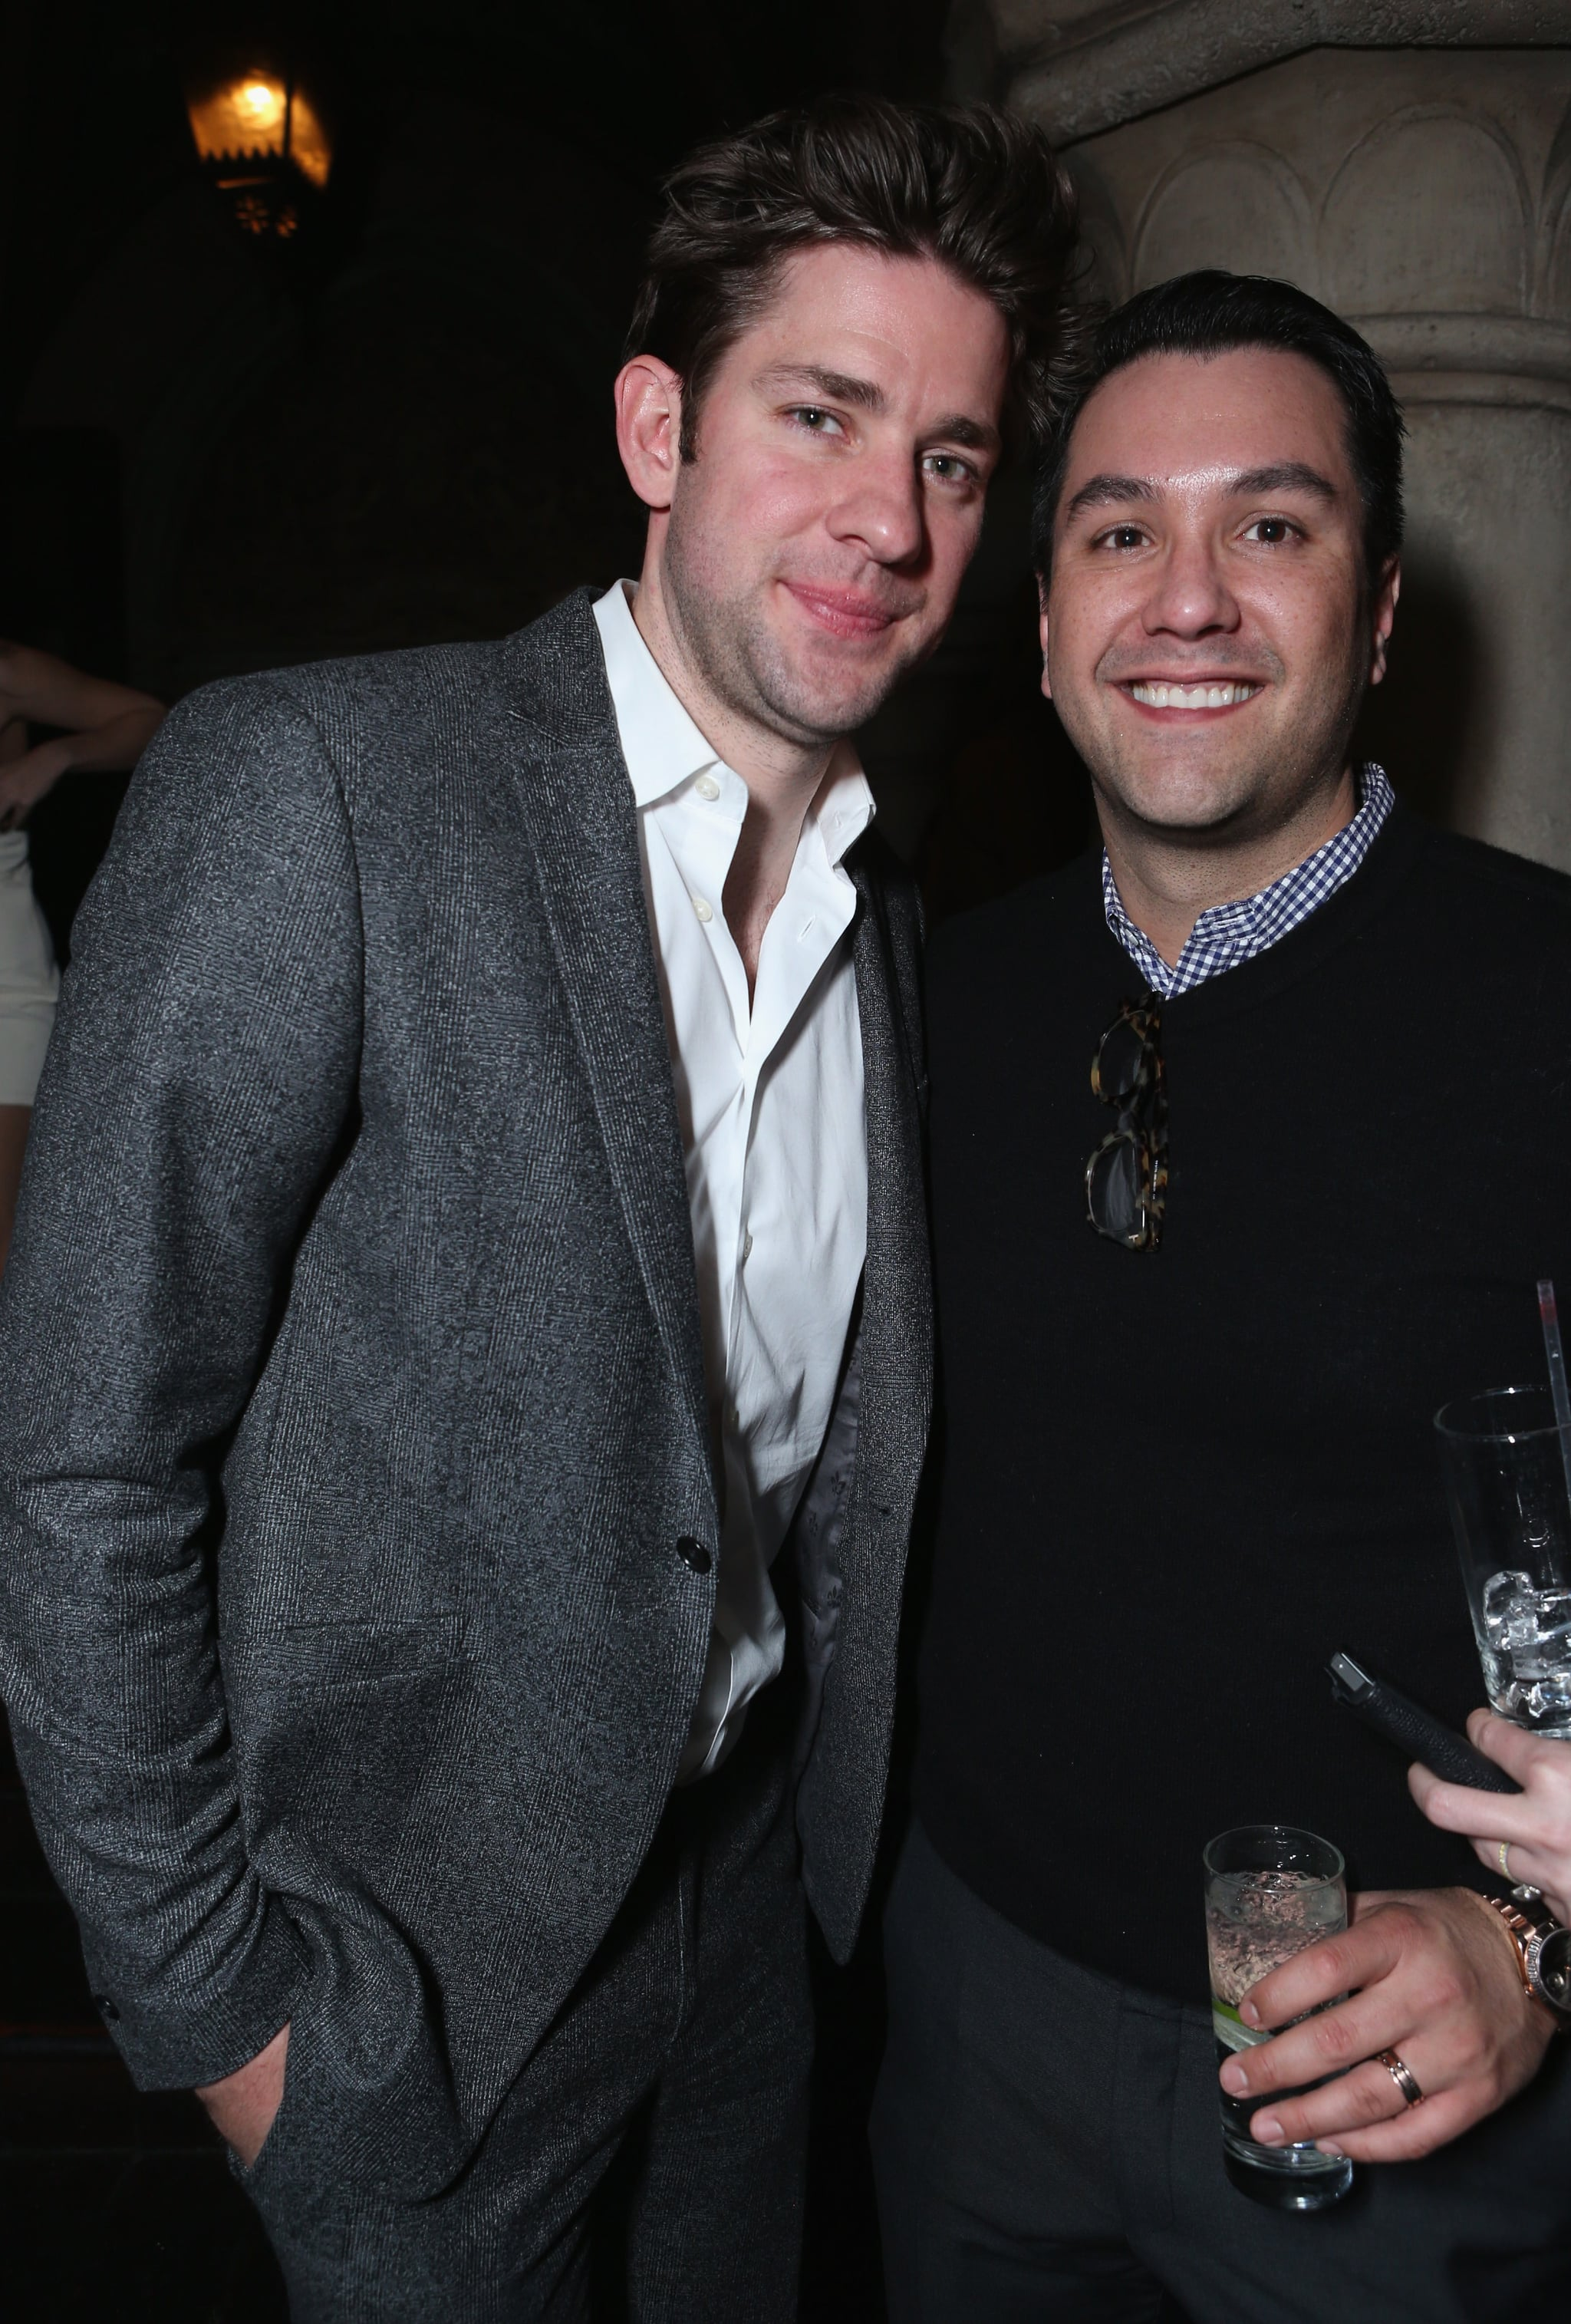 John Krasinski chatted with Warren Zavala at the Grey Goose event.